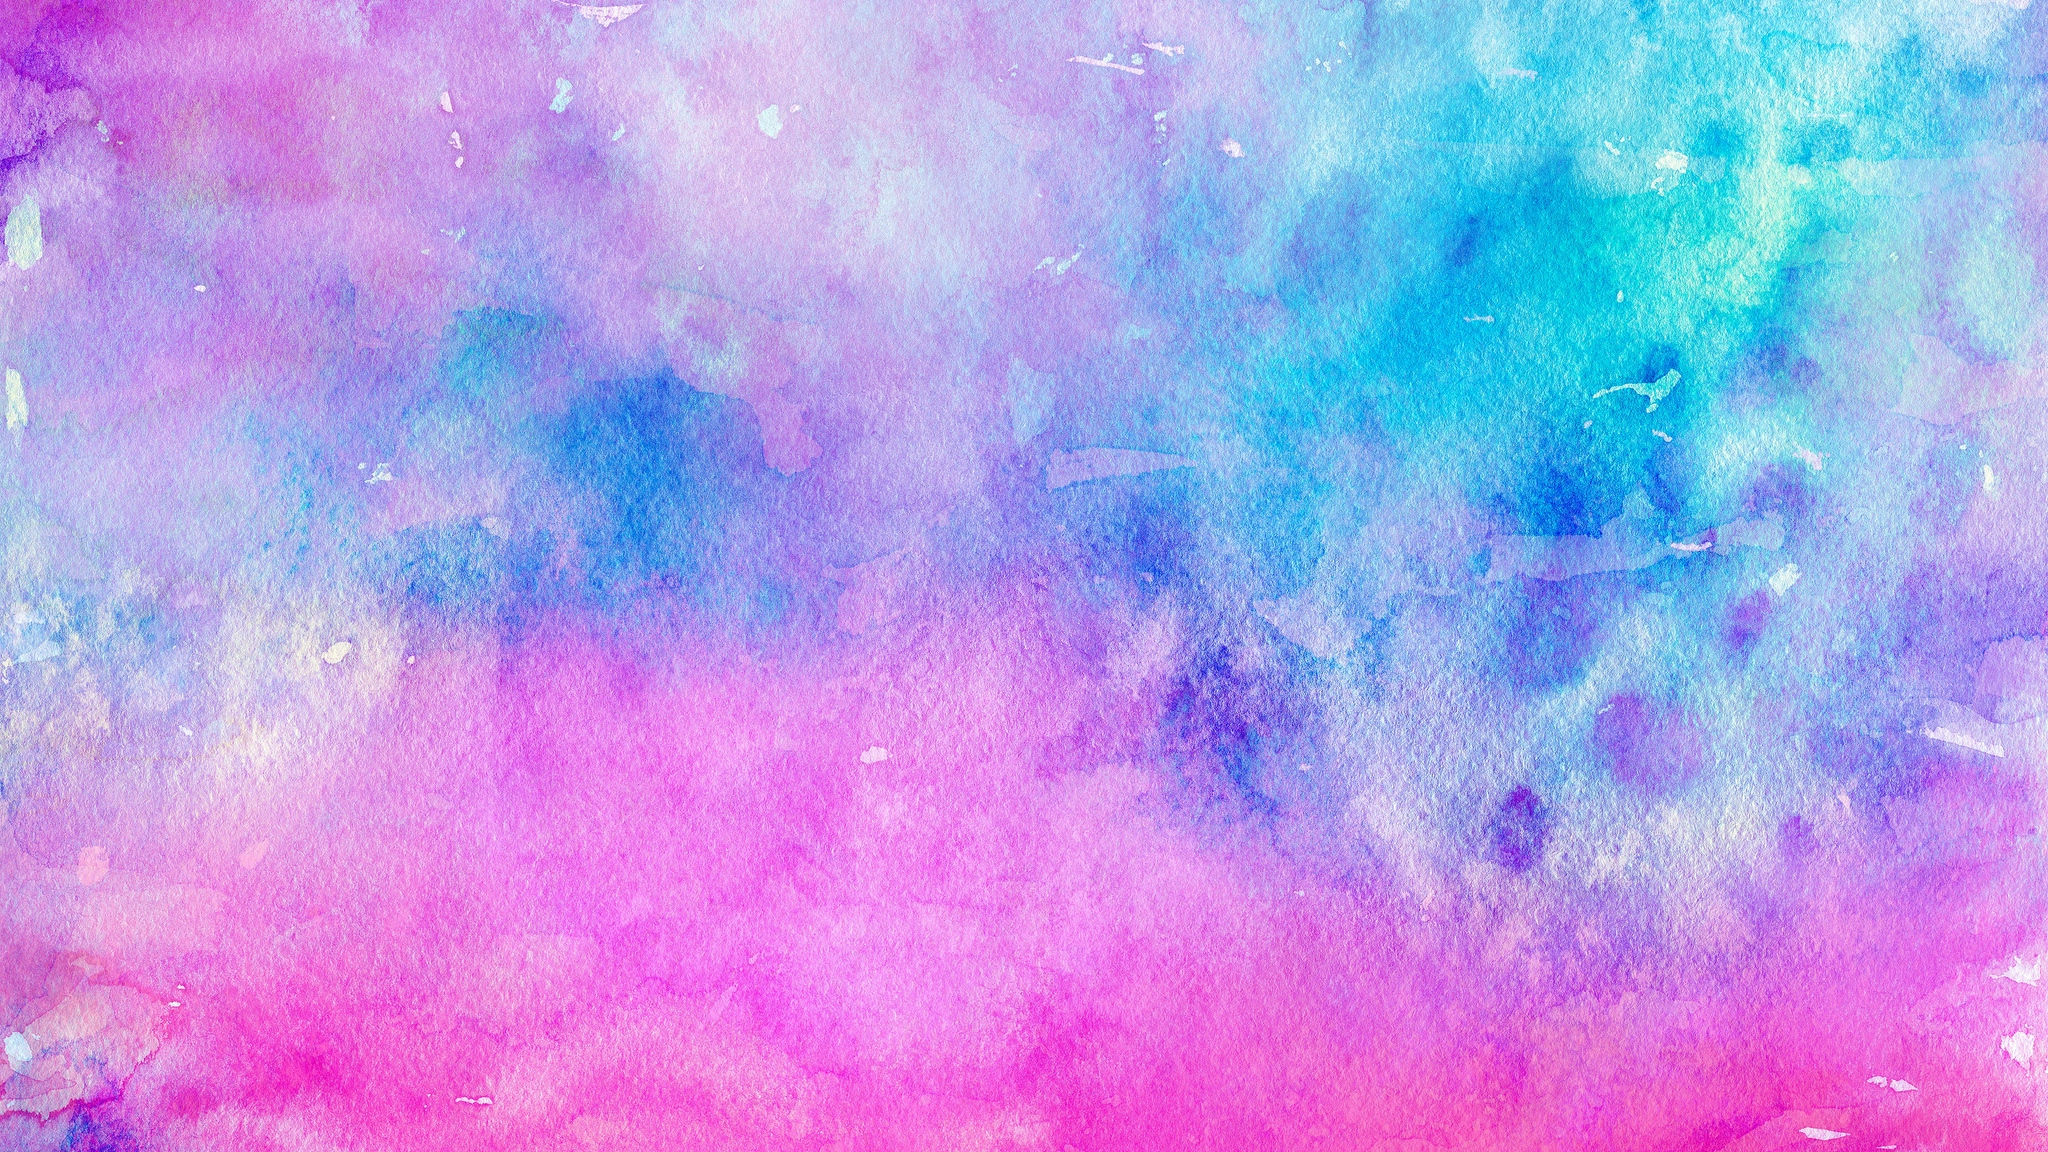 Wallpaper Paint Watercolor Stains Light Watercolor Pink Purple And Blue 2048x1152 Wallpaper Teahub Io